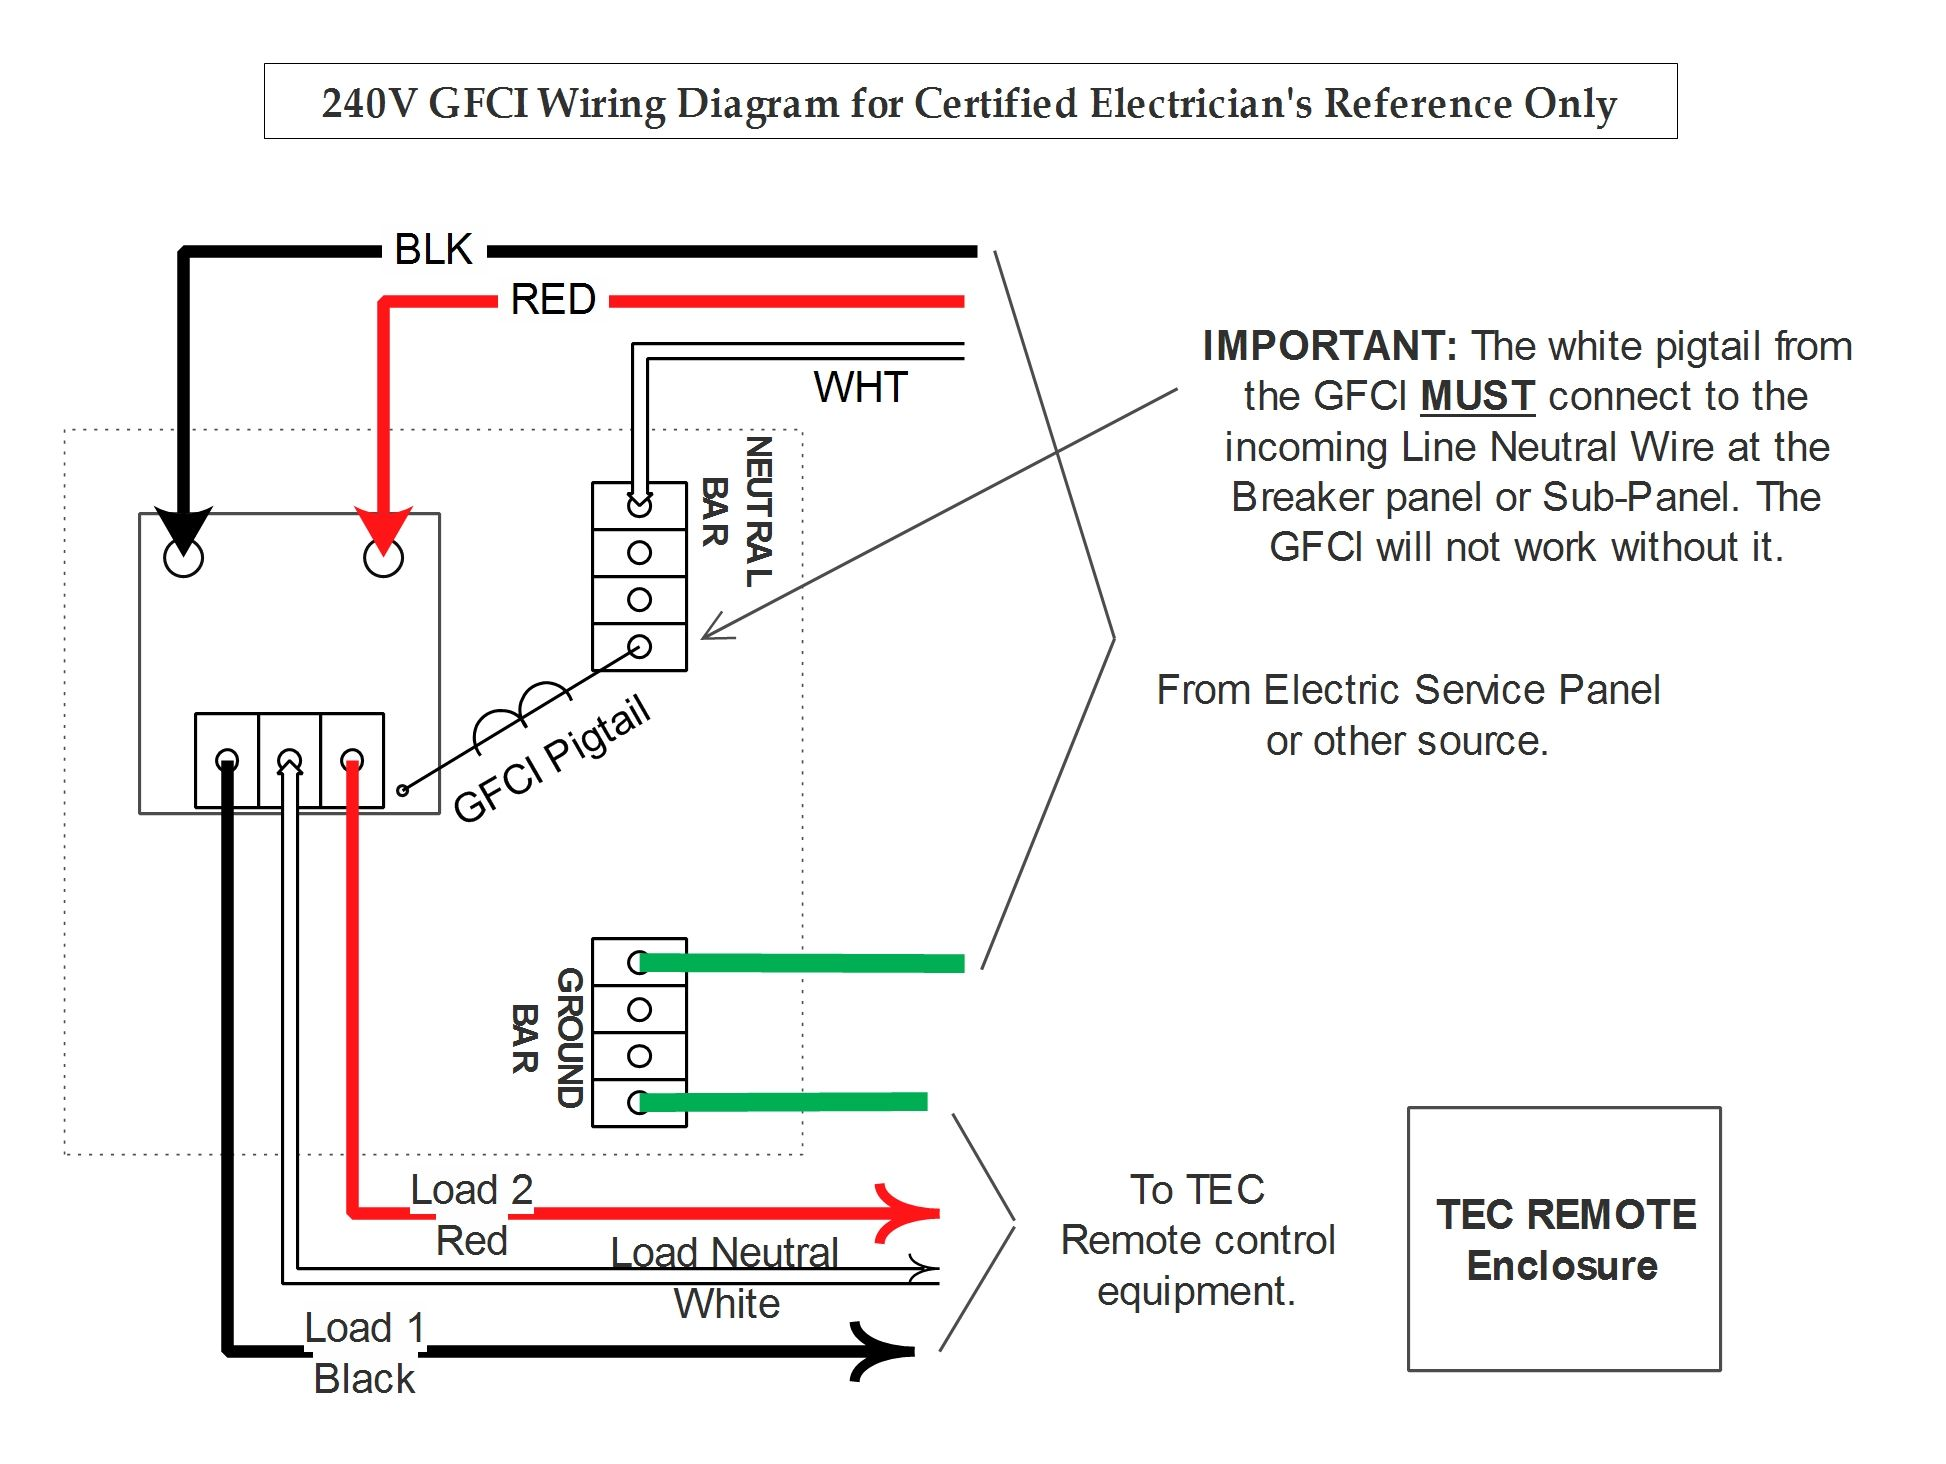 [SCHEMATICS_49CH]  Vbm Challenger Lifts Wiring Diagrams - Ceiling Fan Wiring Schematic for Wiring  Diagram Schematics | Challenger Lift Wiring Diagram |  | Wiring Diagram Schematics